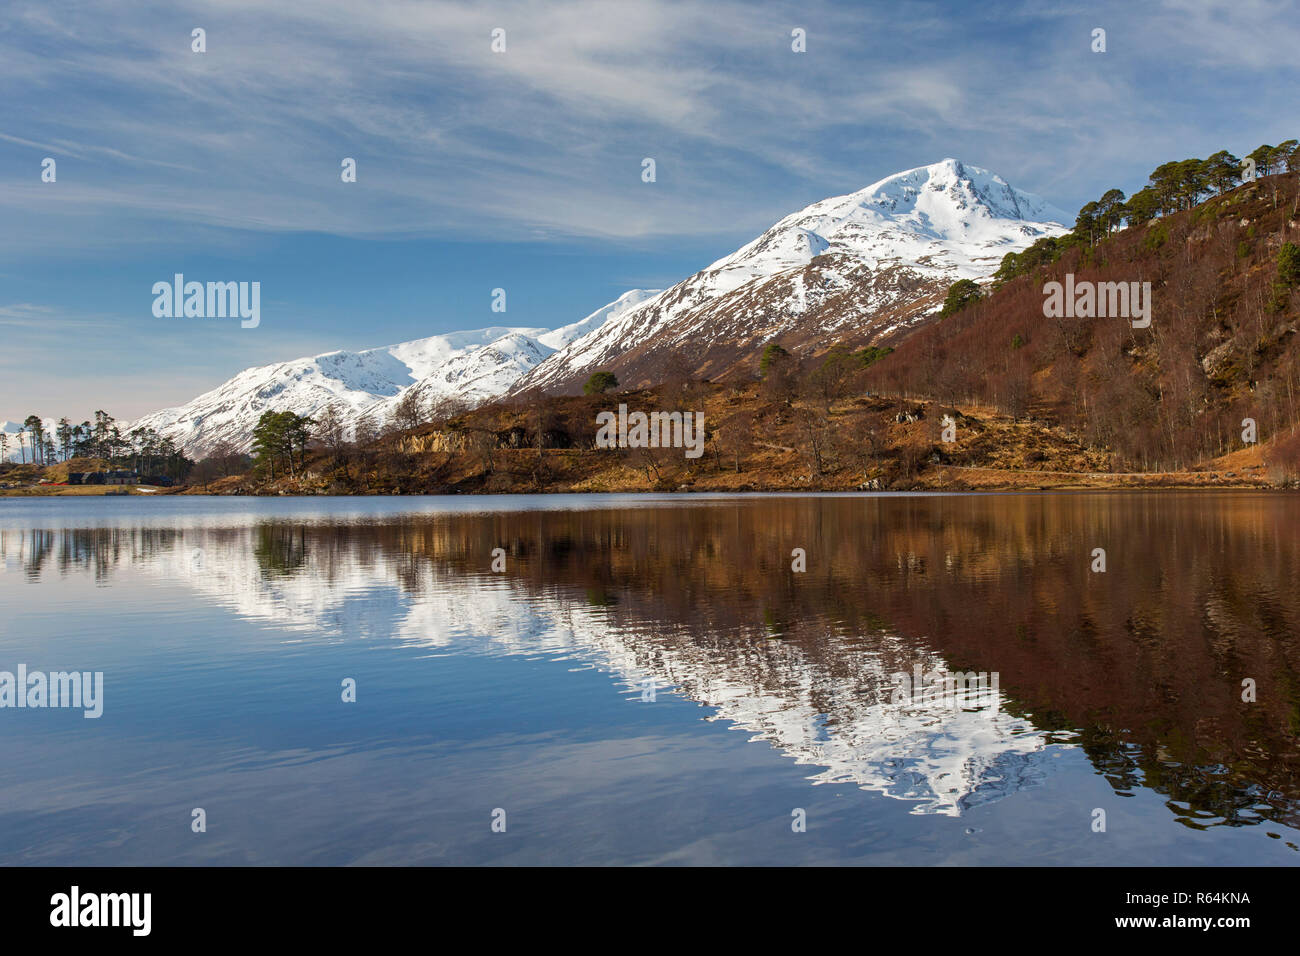 Caledonian Forest along Loch Affric and mountain Sgurr na Lapaich in winter, Glen Affric, Inverness-shire, Scottish Highlands, Highland, Scotland, UK - Stock Image